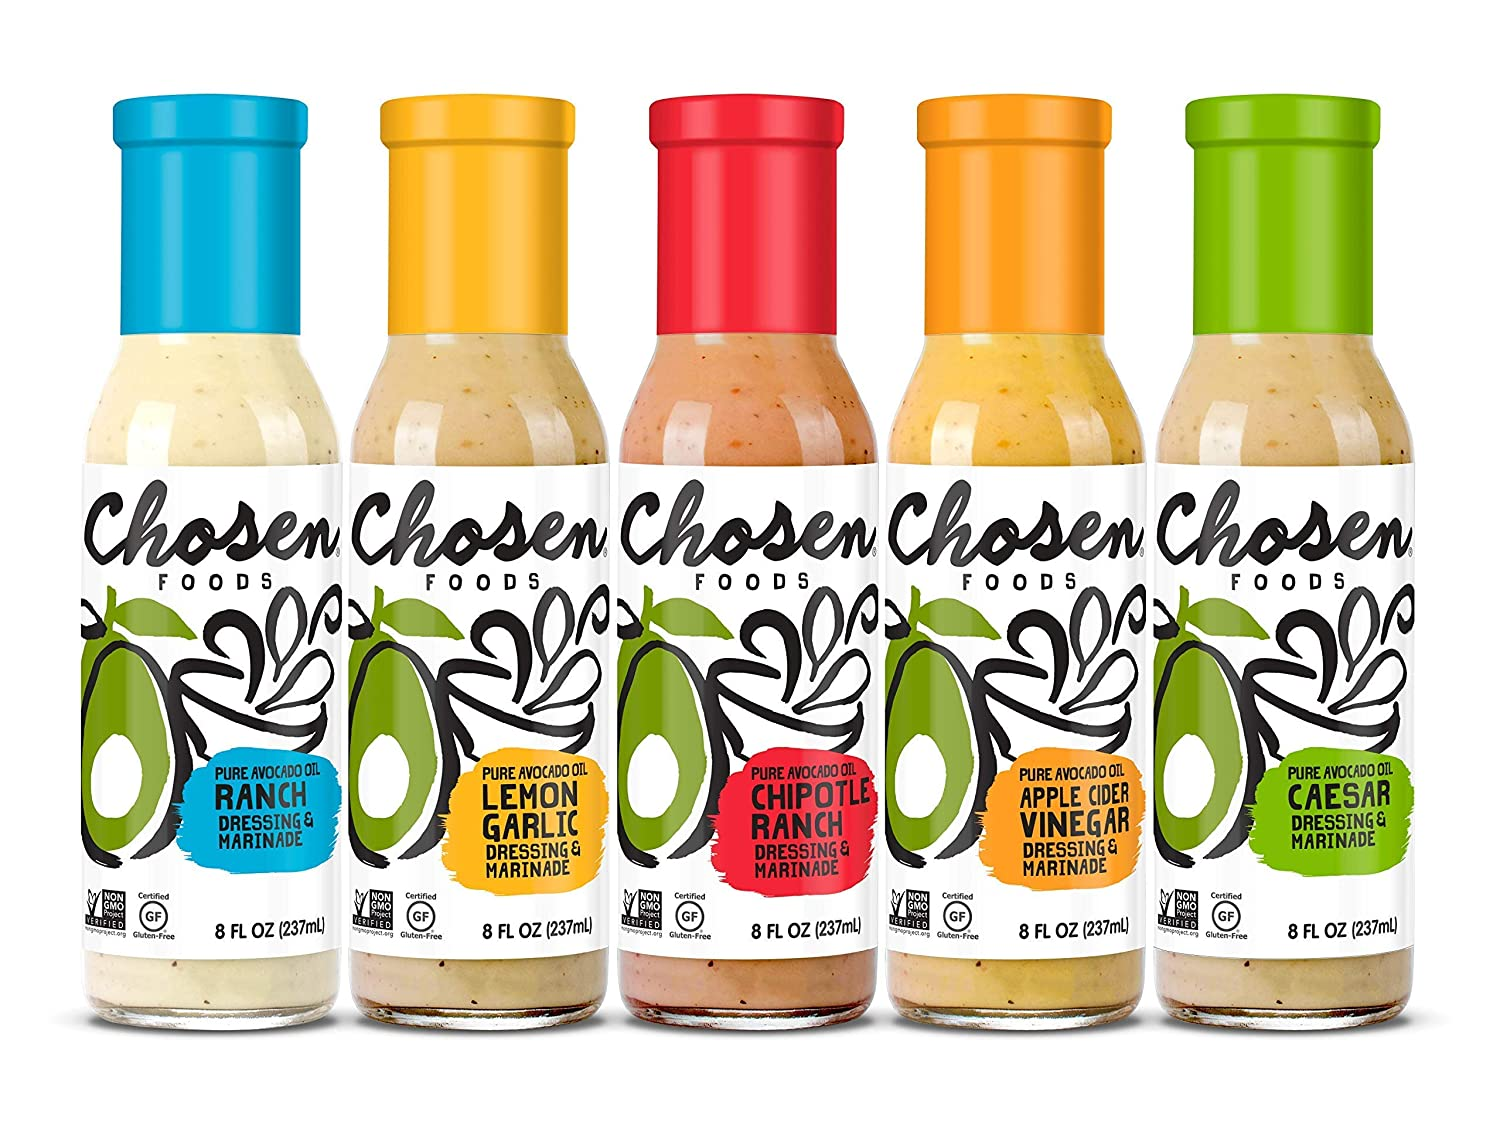 Chosen Foods House Dressings | 5 Pack | Ranch, Lemon Garlic, Chipotle Ranch, Apple Cider Vinegar, and Caesar | 8 oz each